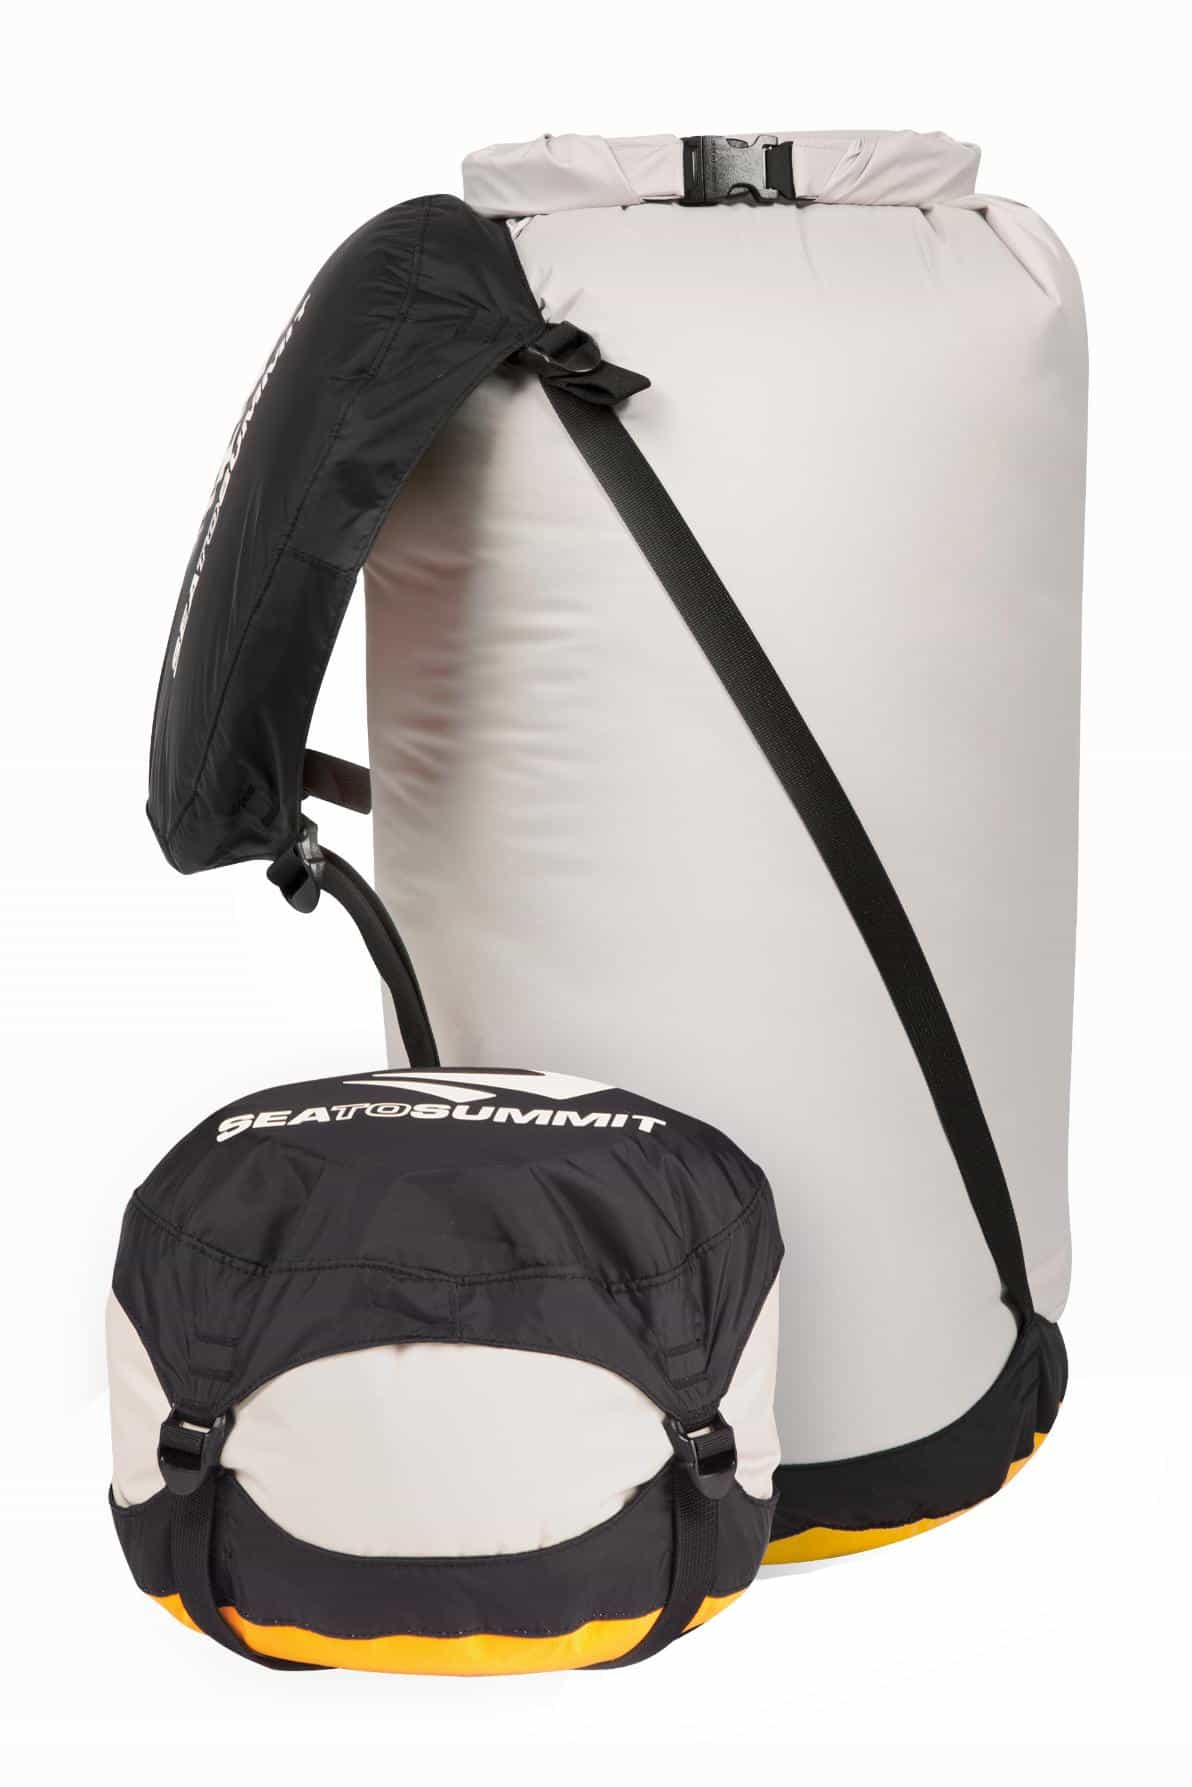 Sea to Summit-eVent Comp Dry Sack XL 30L